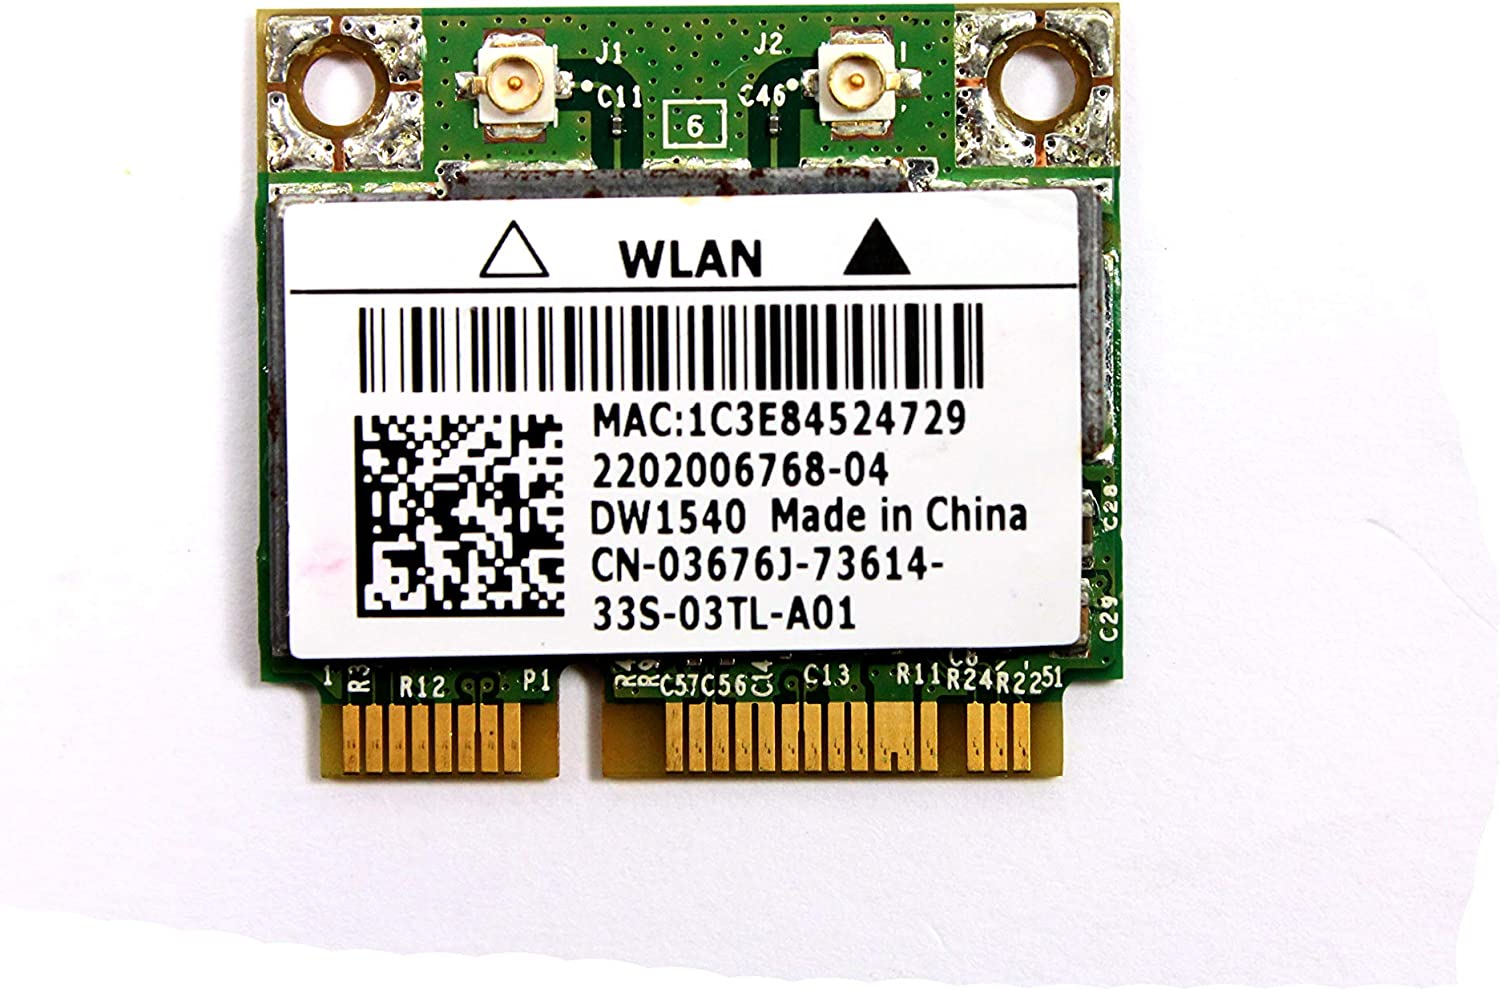 3676J - Dell Wireless 1540 DW1540 WiFi 802.11 a/b/g/n Half-Height Mini-PCI Express Card - 3676J